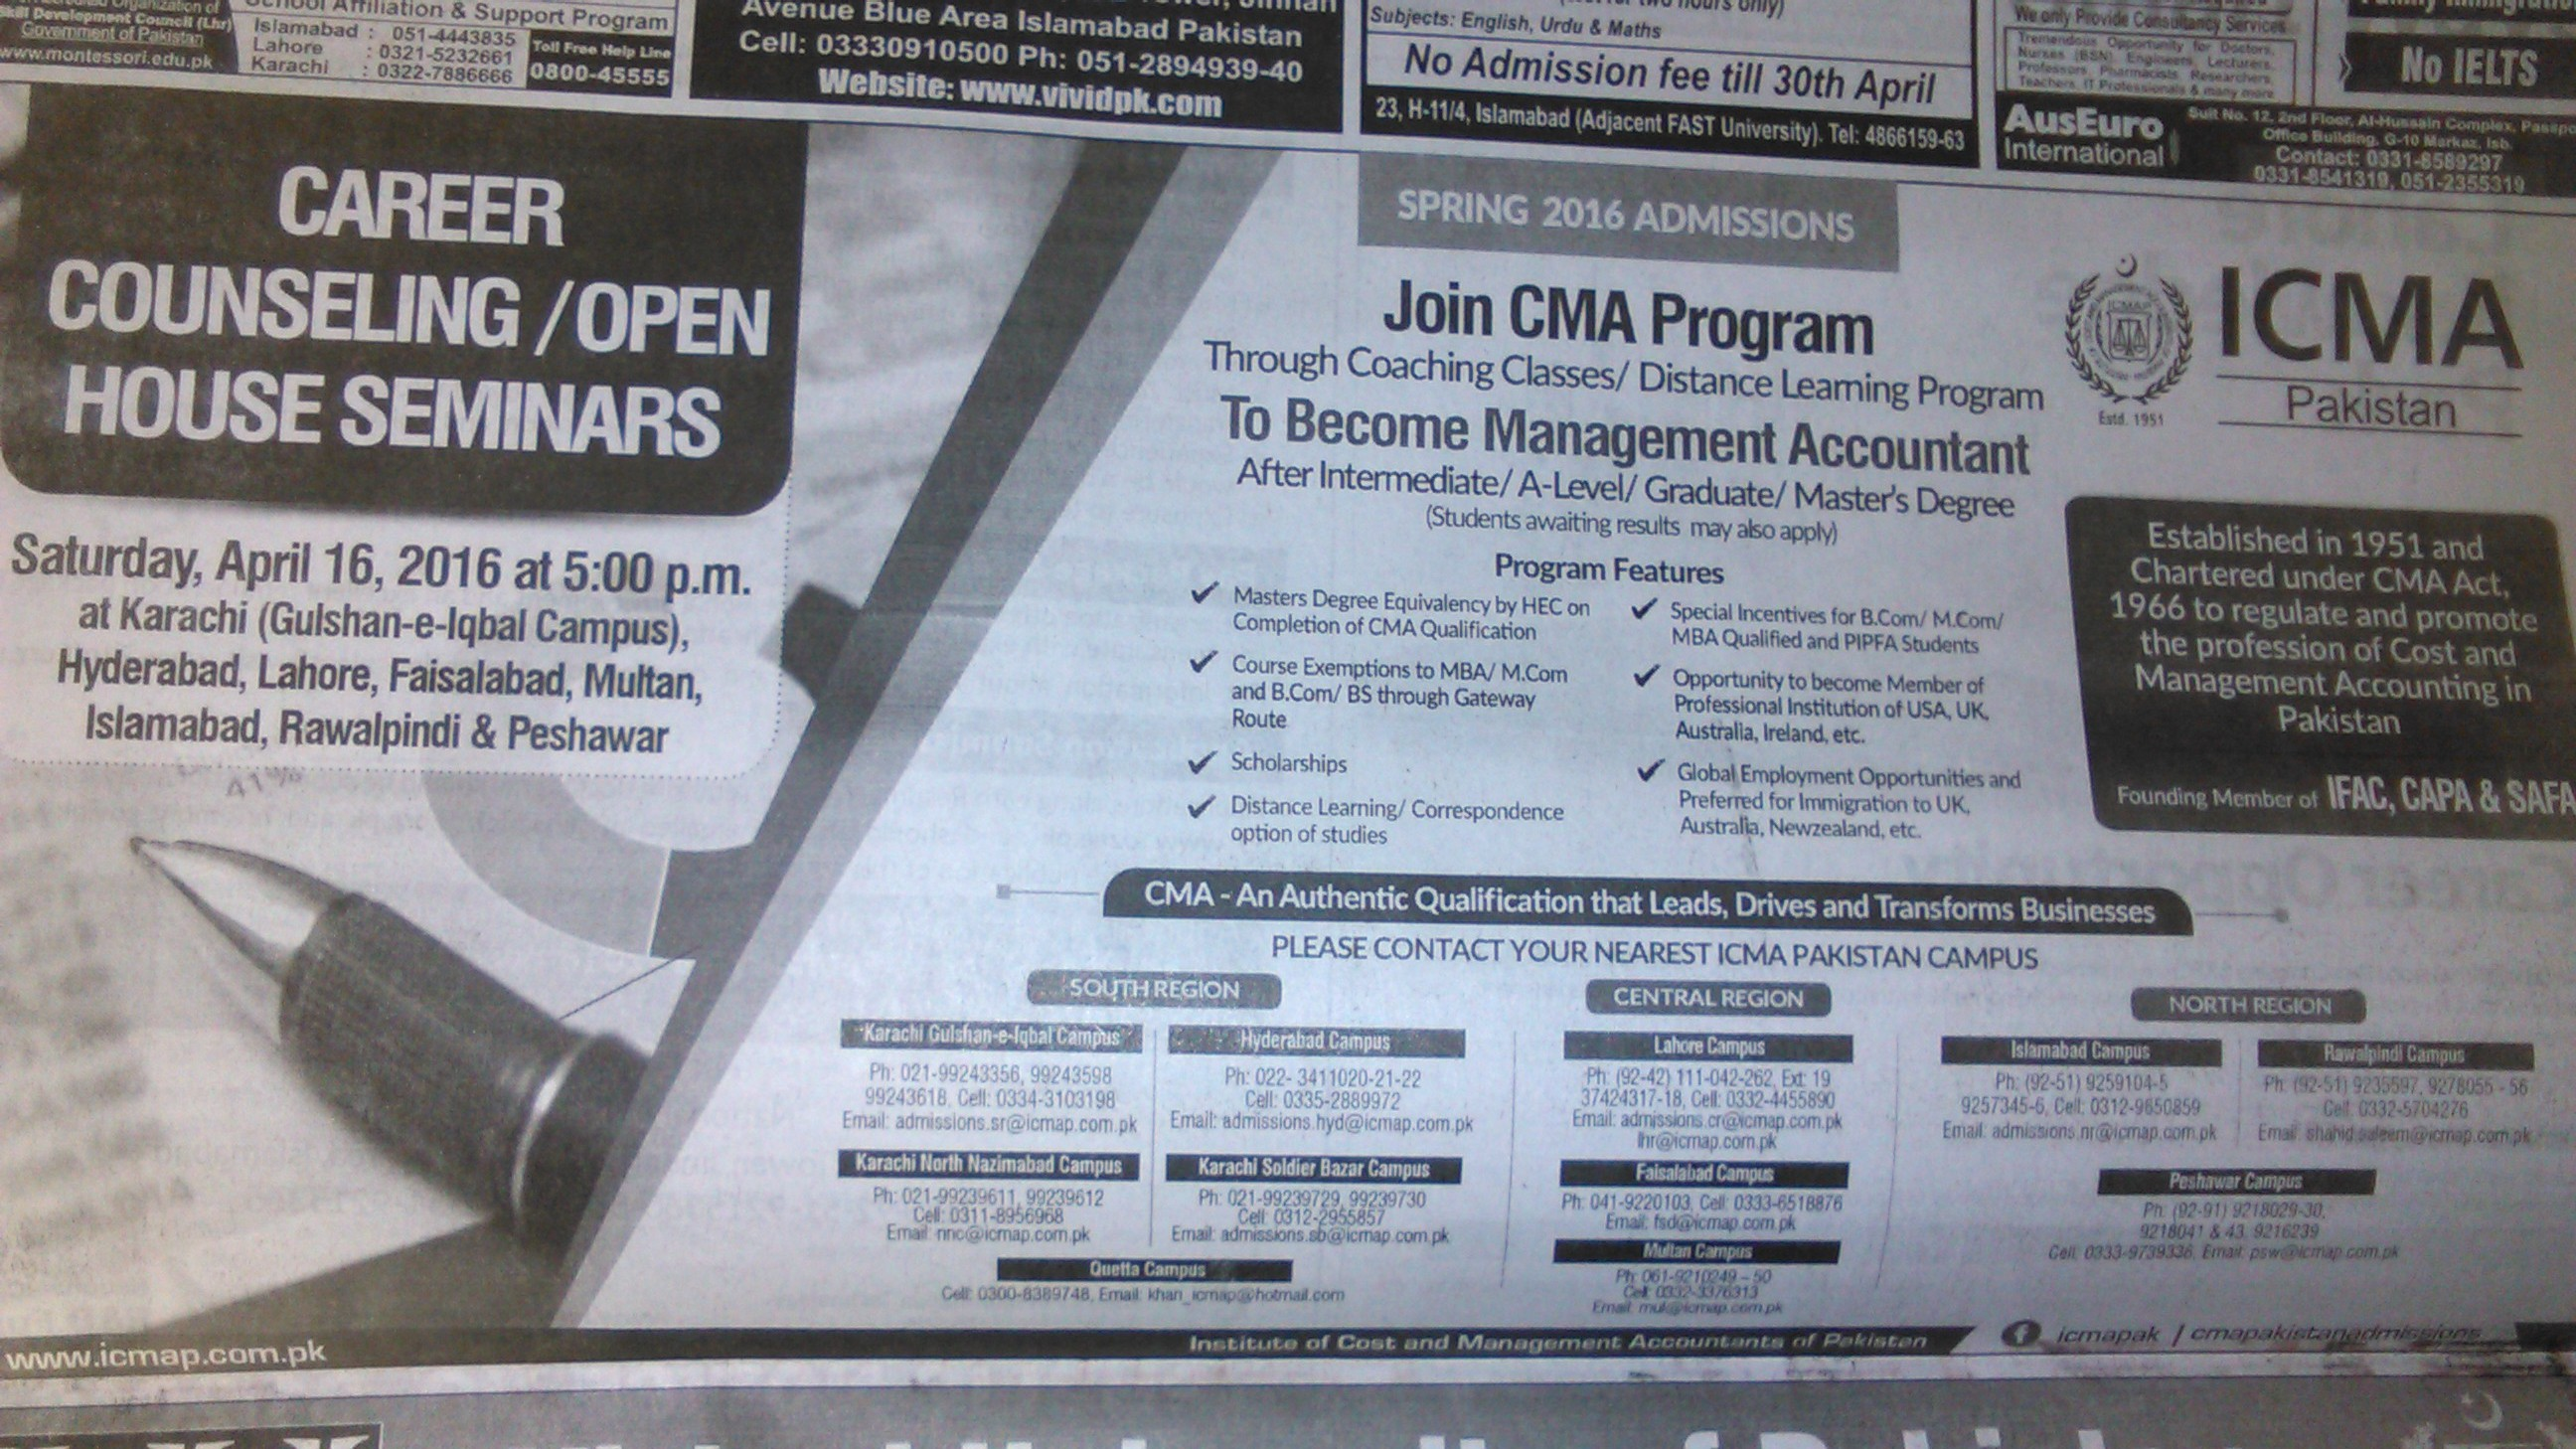 ICMA Open House Become Management Accountant